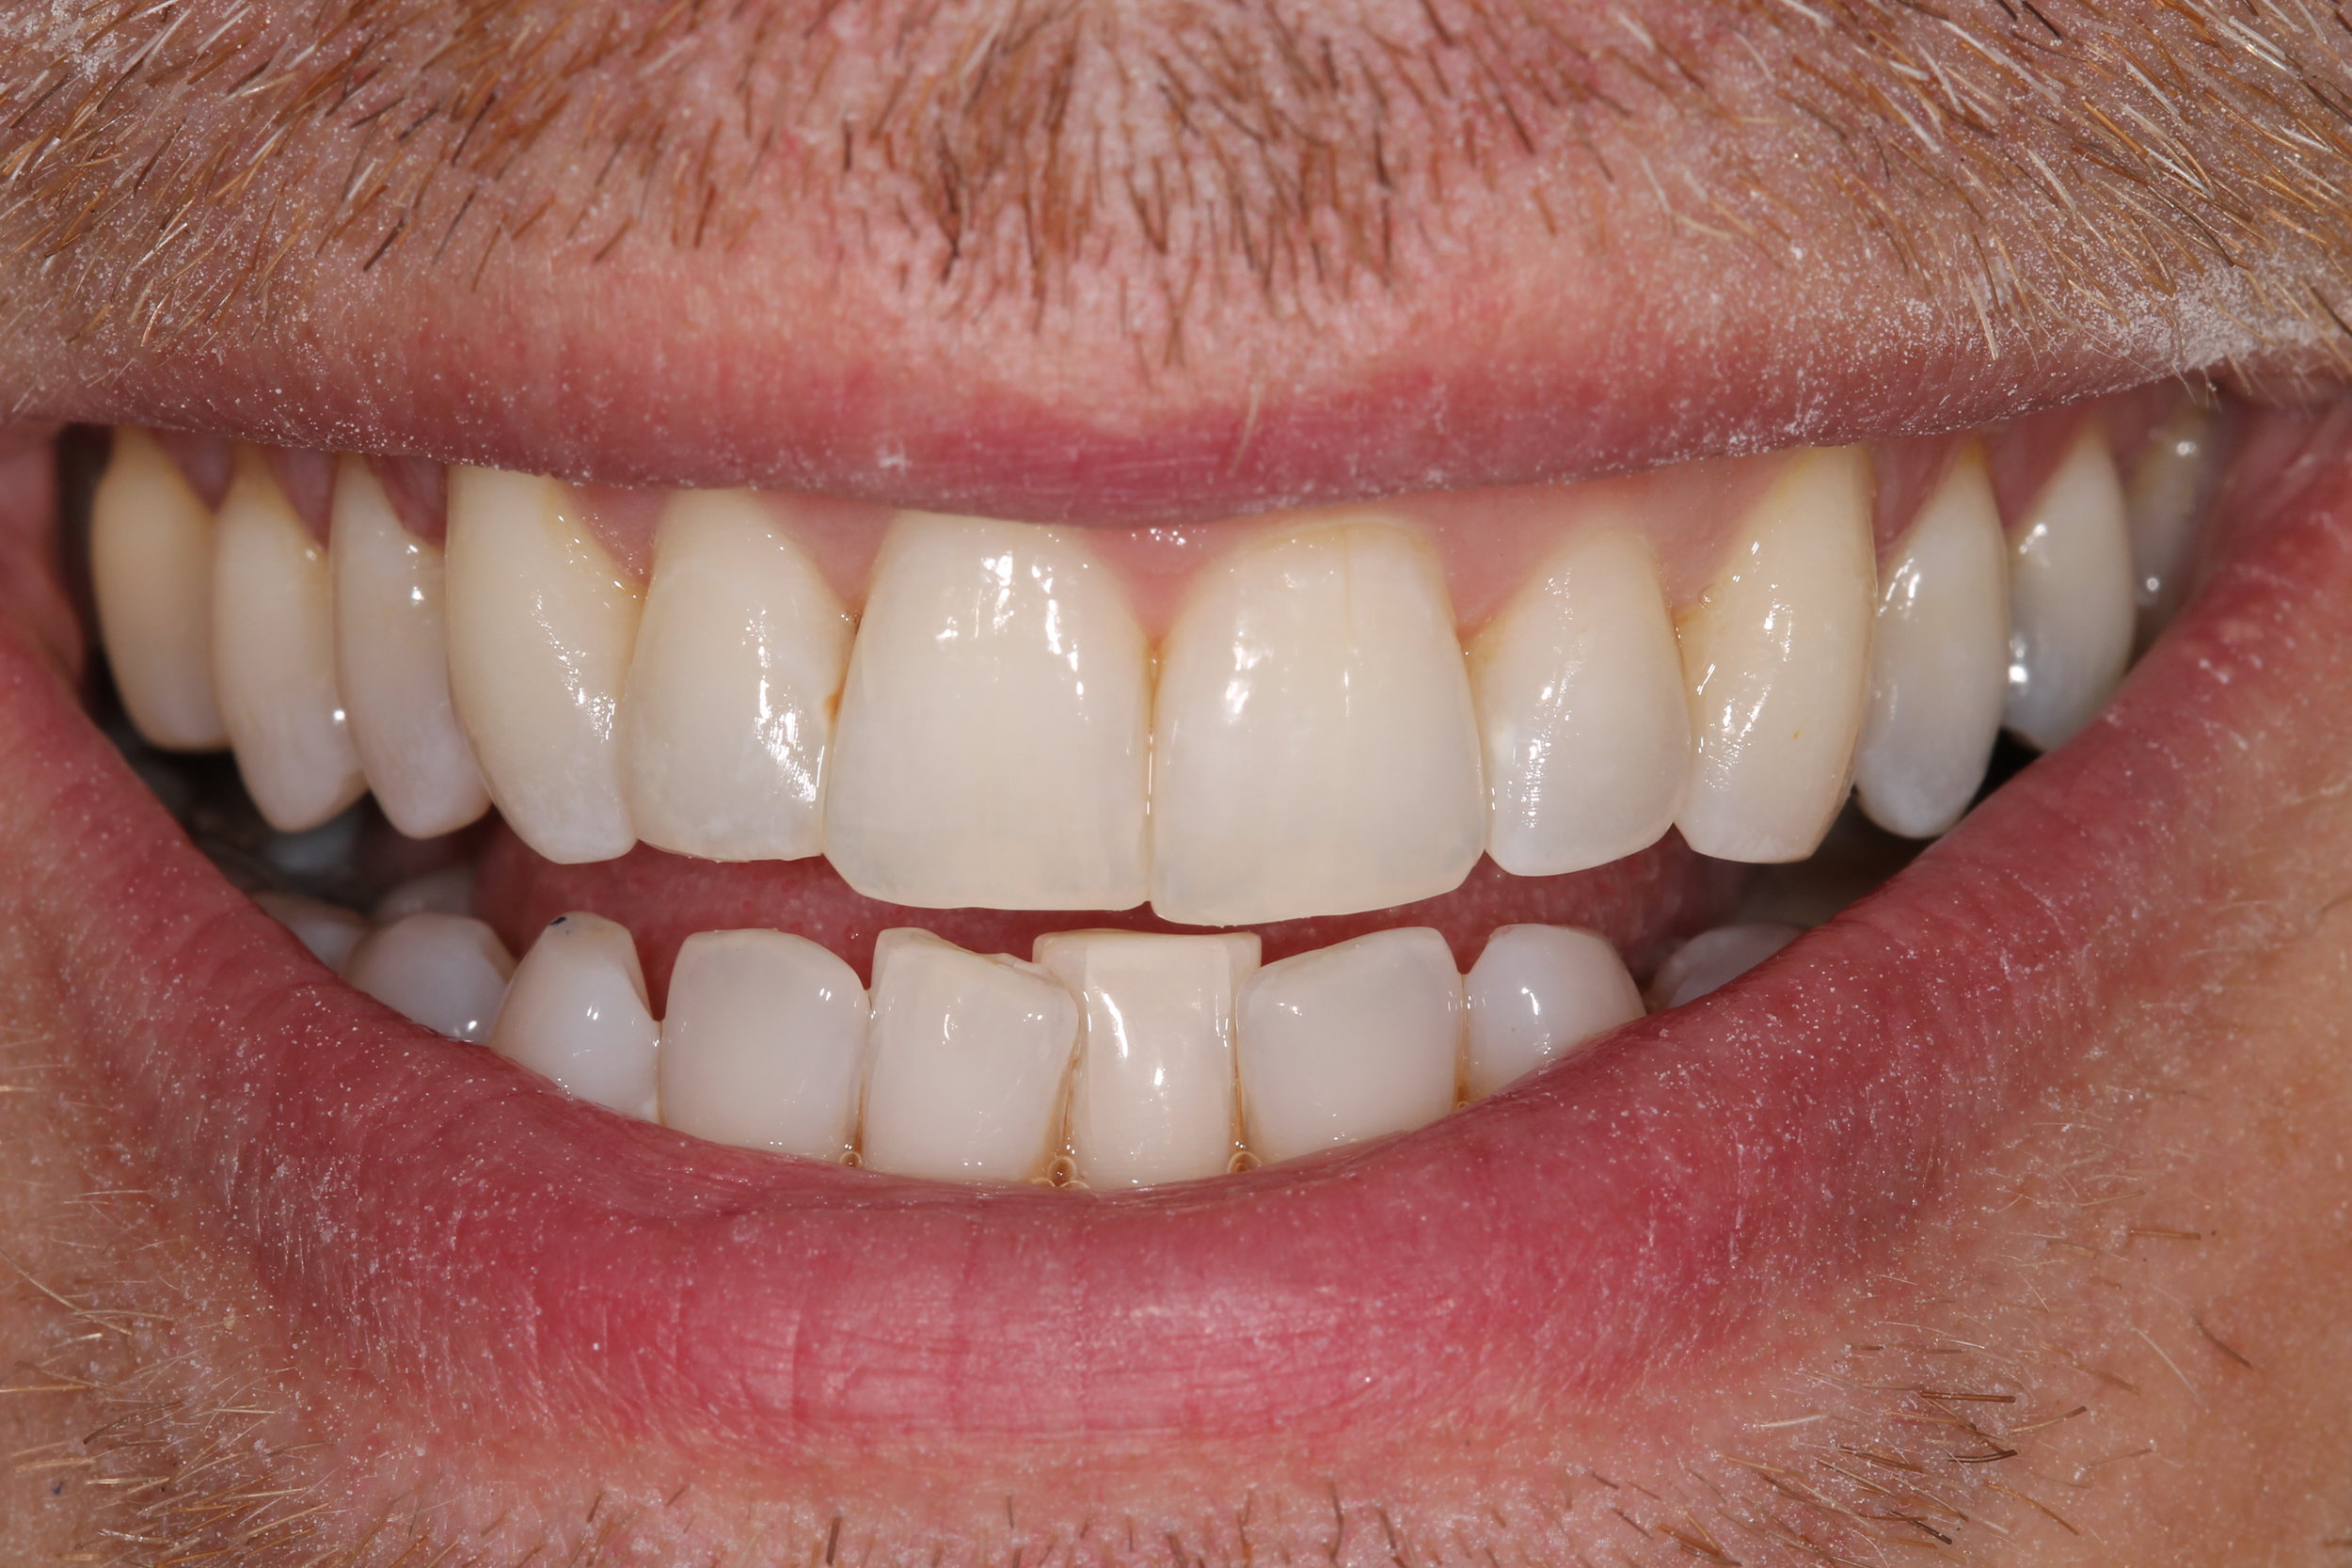 Smile Makeover at tooth (top teeth) - after